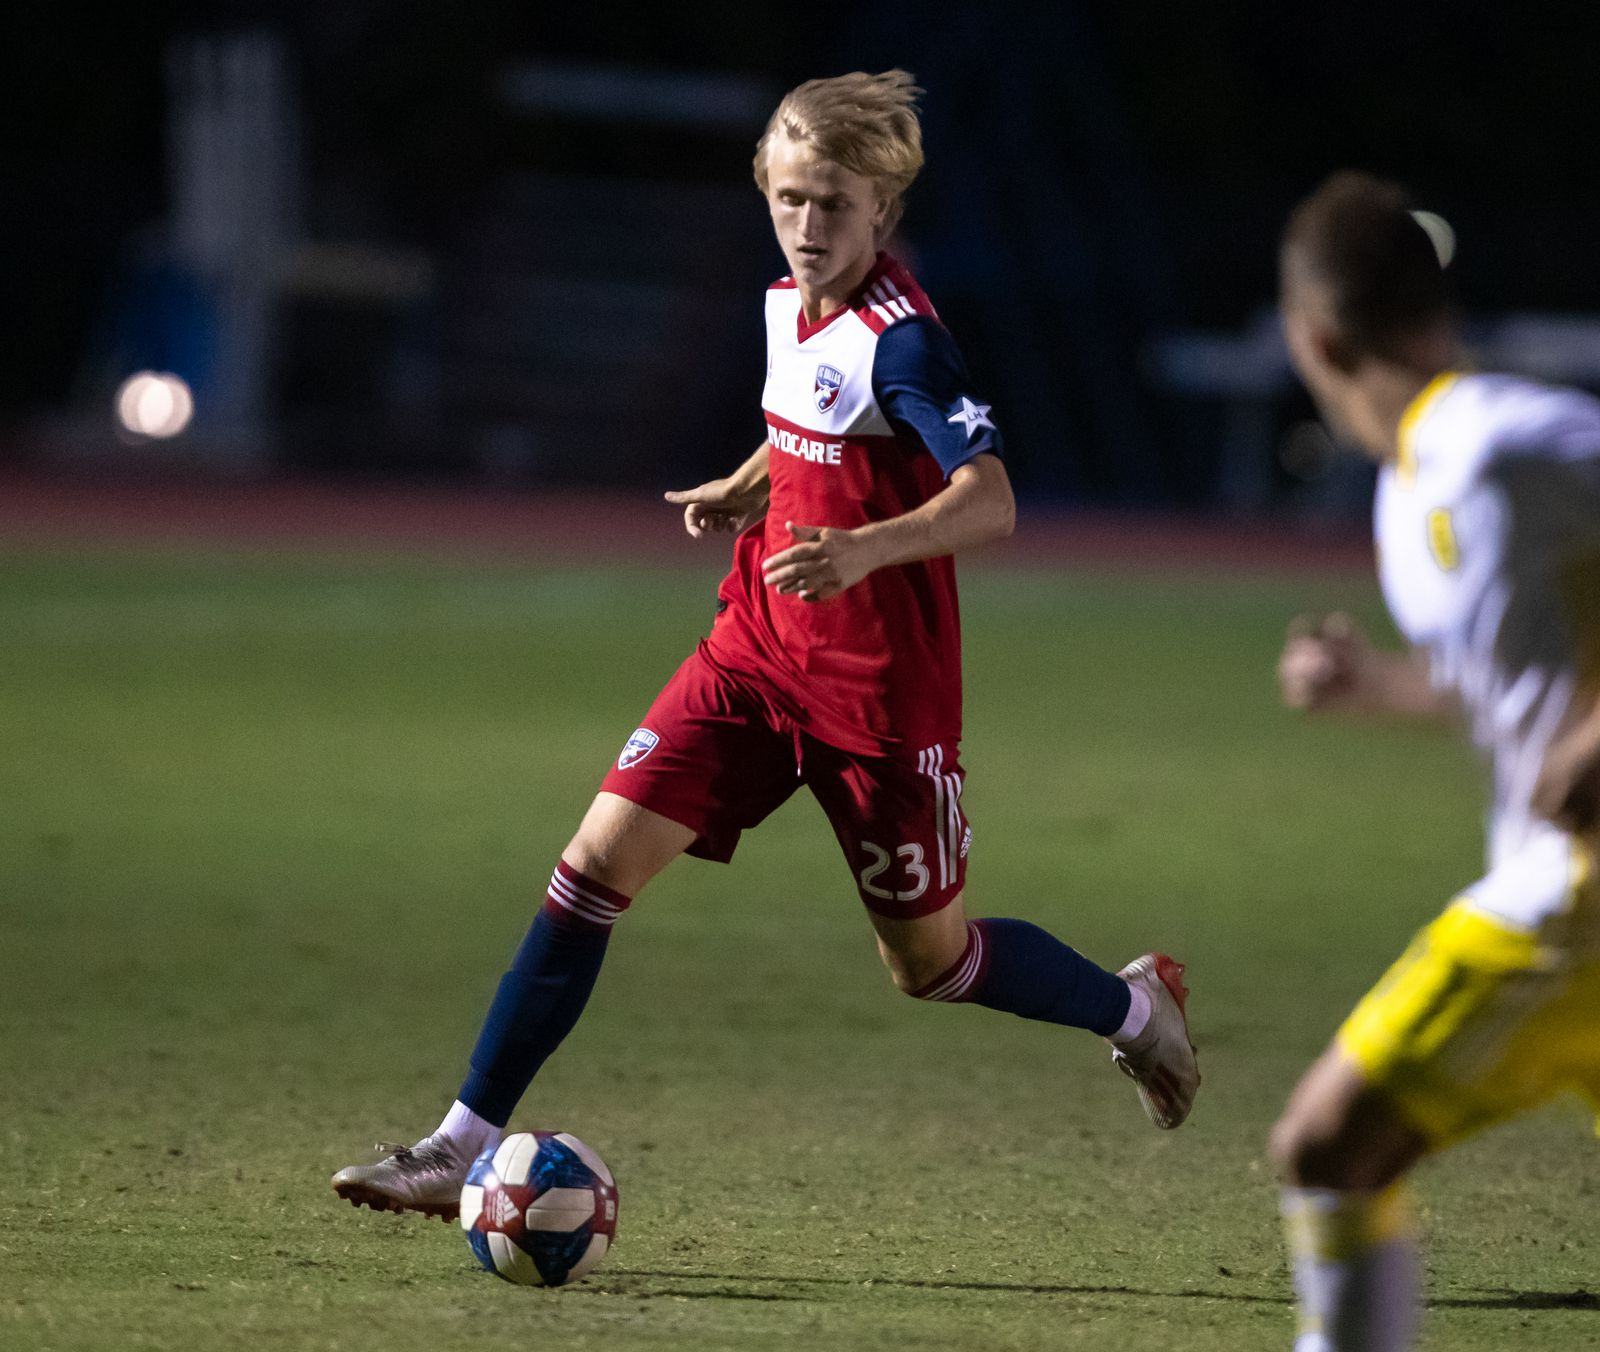 DALLAS, TX - JUNE 19: Thomas Roberts in action during the Lamar Hunt U.S. Open Cup round of 16 soccer game between FC Dallas and New Mexico United on June 19, 2019 at Westcott Field in Dallas, Texas.  (Photo by Matthew Visinsky)